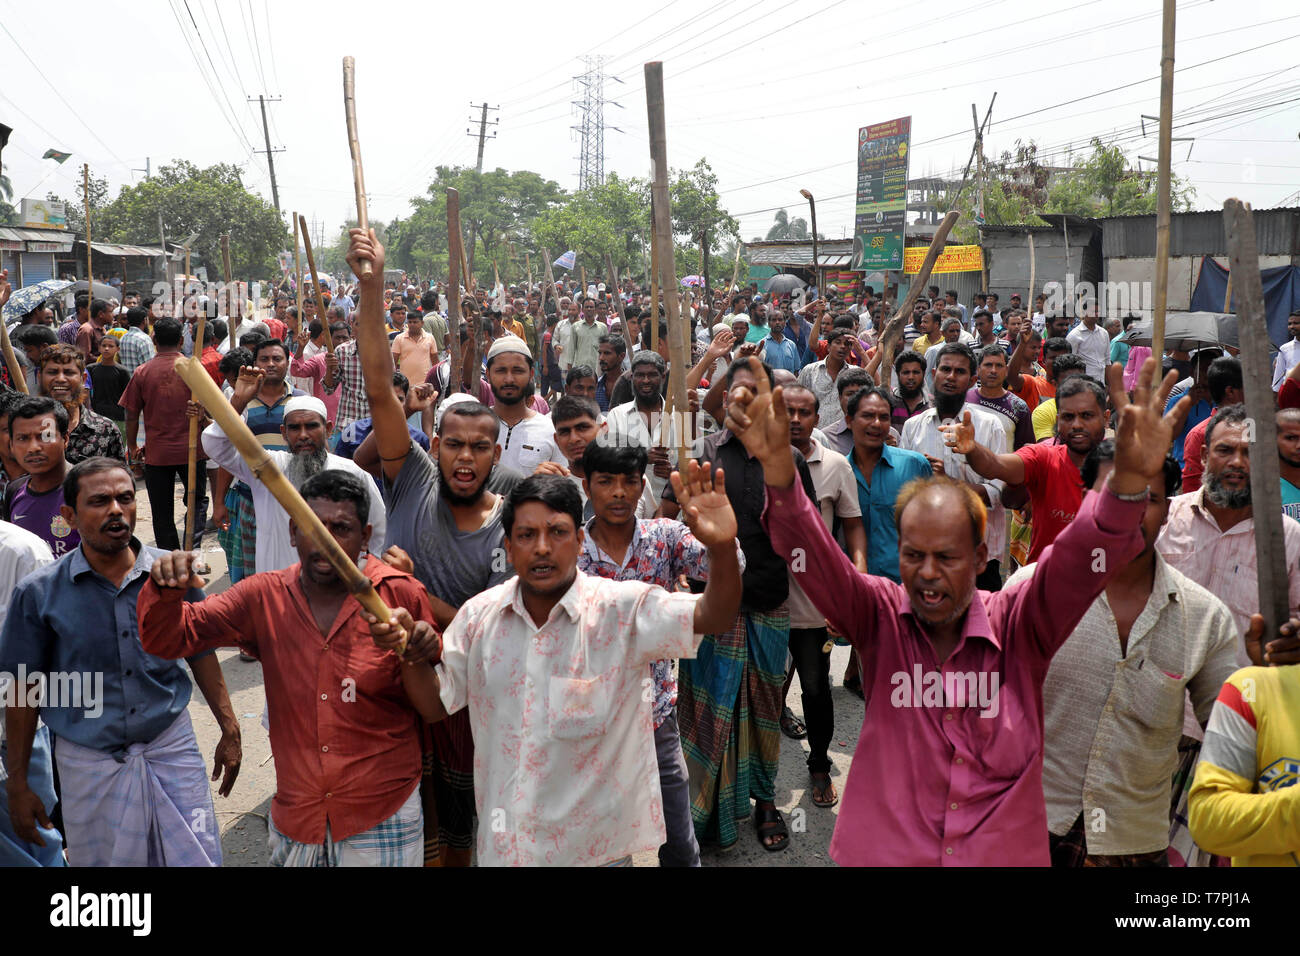 Dhaka, Bangladesh - May 08, 2019: Jute mill workers staged demonstrations stretching from Demra to Jatrabari in Dhaka, Bangladesh on May 08, 2019 to p - Stock Image